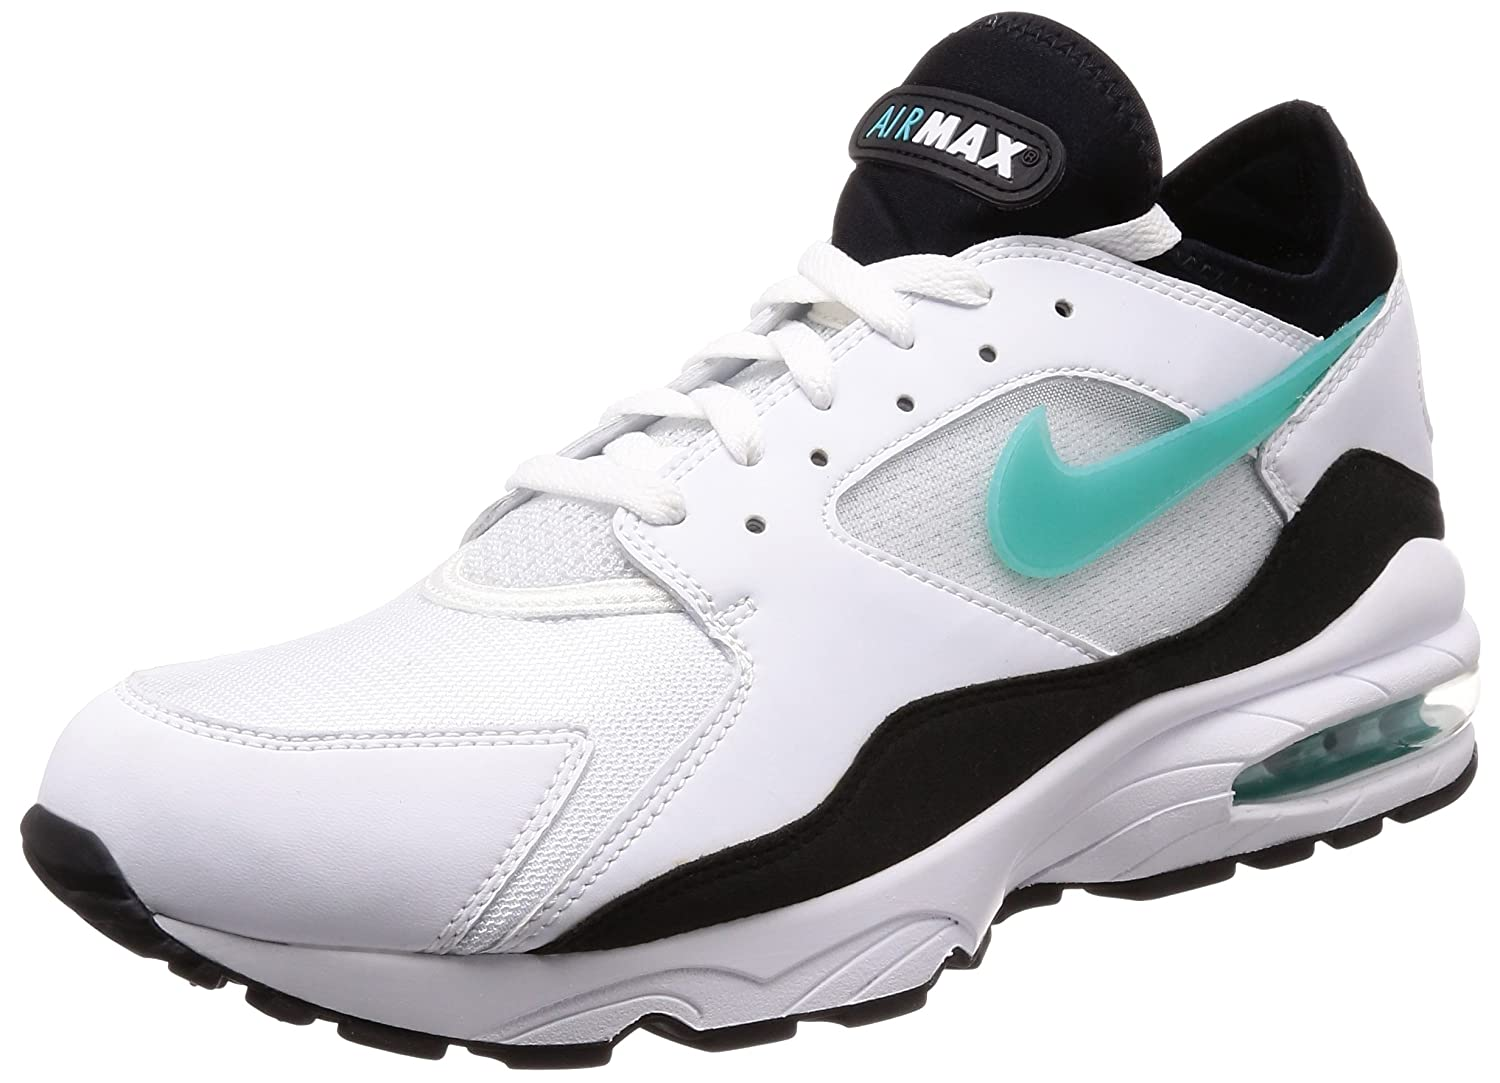 Nike Air Max 93 Dusty Cactus - 306551-107 -  40.5 EU|Bianco